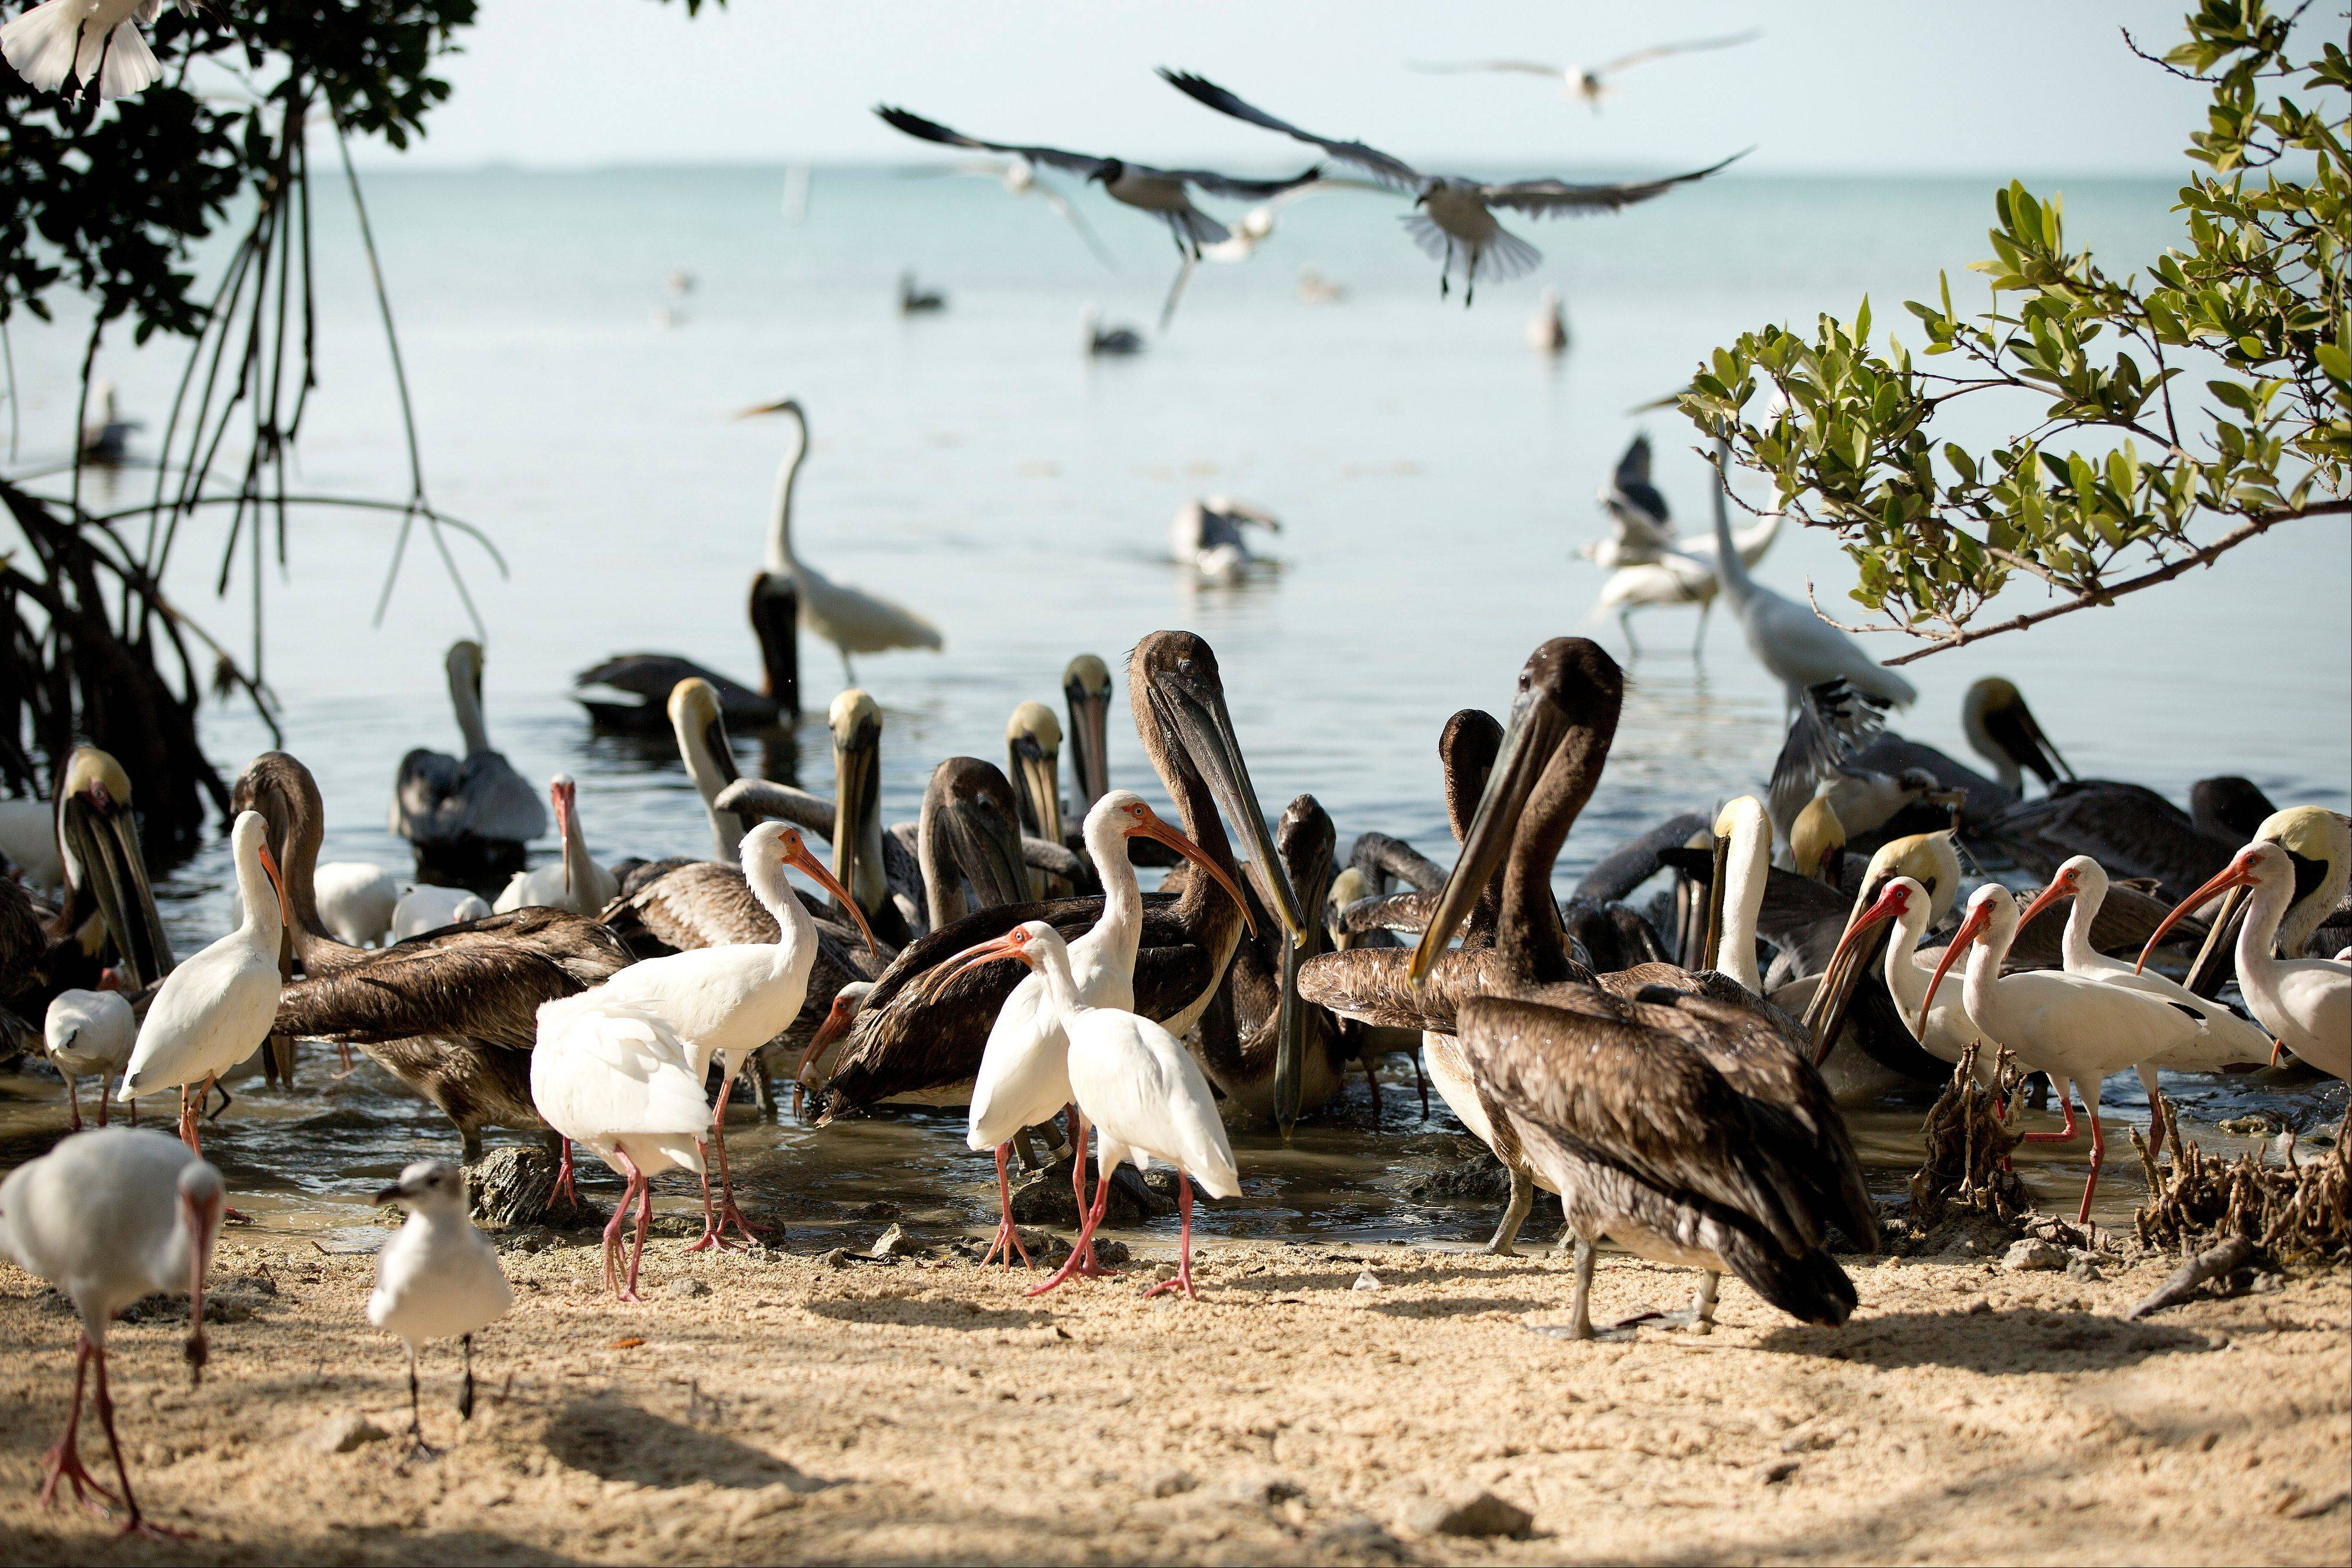 After touring the birds in cages at the Florida Keys Wild Bird Center near Key Largo, Fla., visitors can see birds roaming free on the beach.